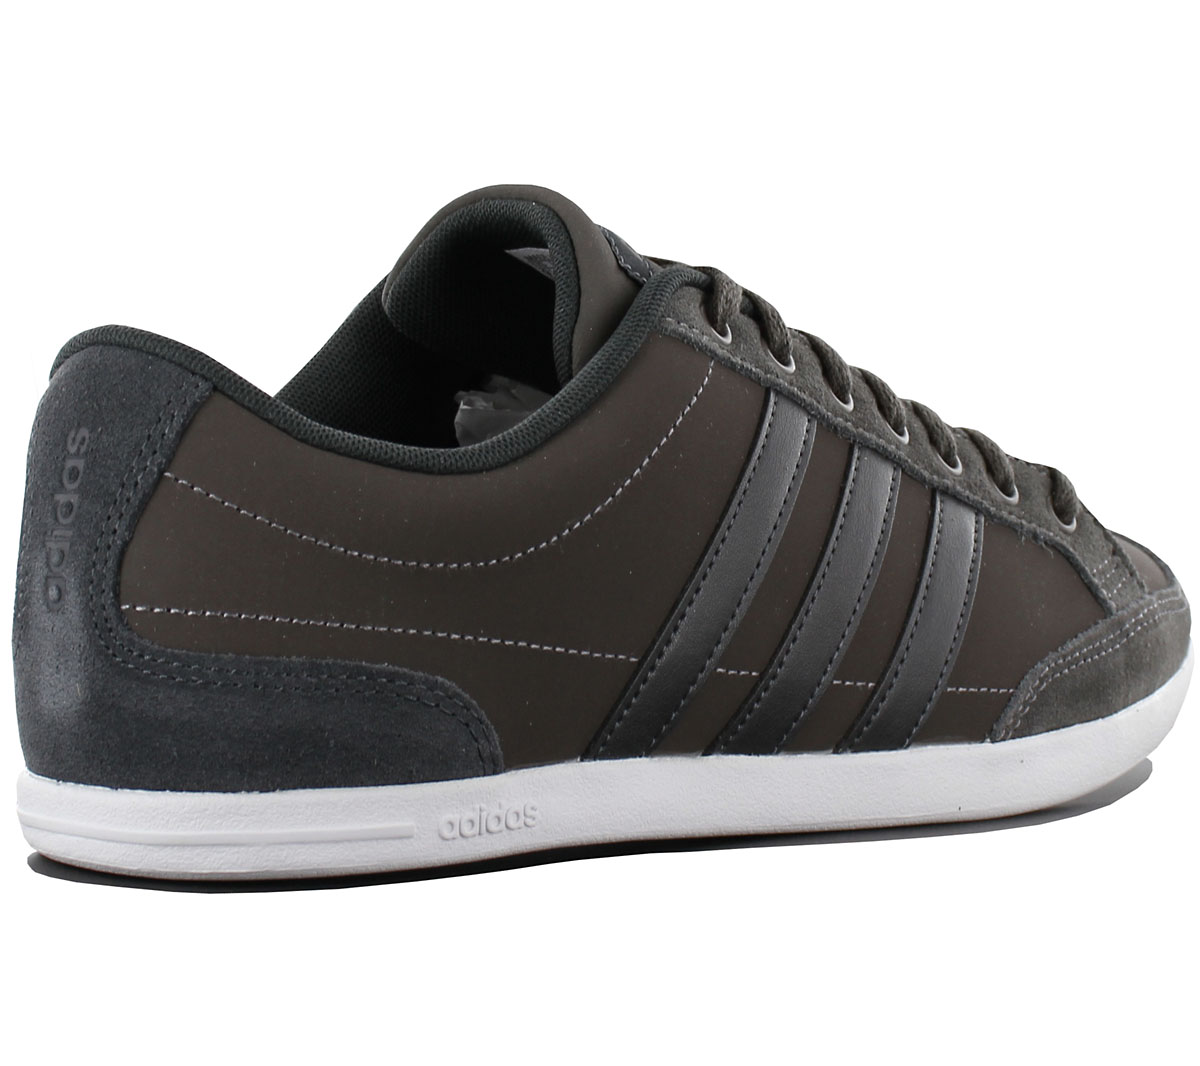 57859ddedbc Adidas Caflaire Low Leather Men s Sneakers Fashion Shoes Leather ...